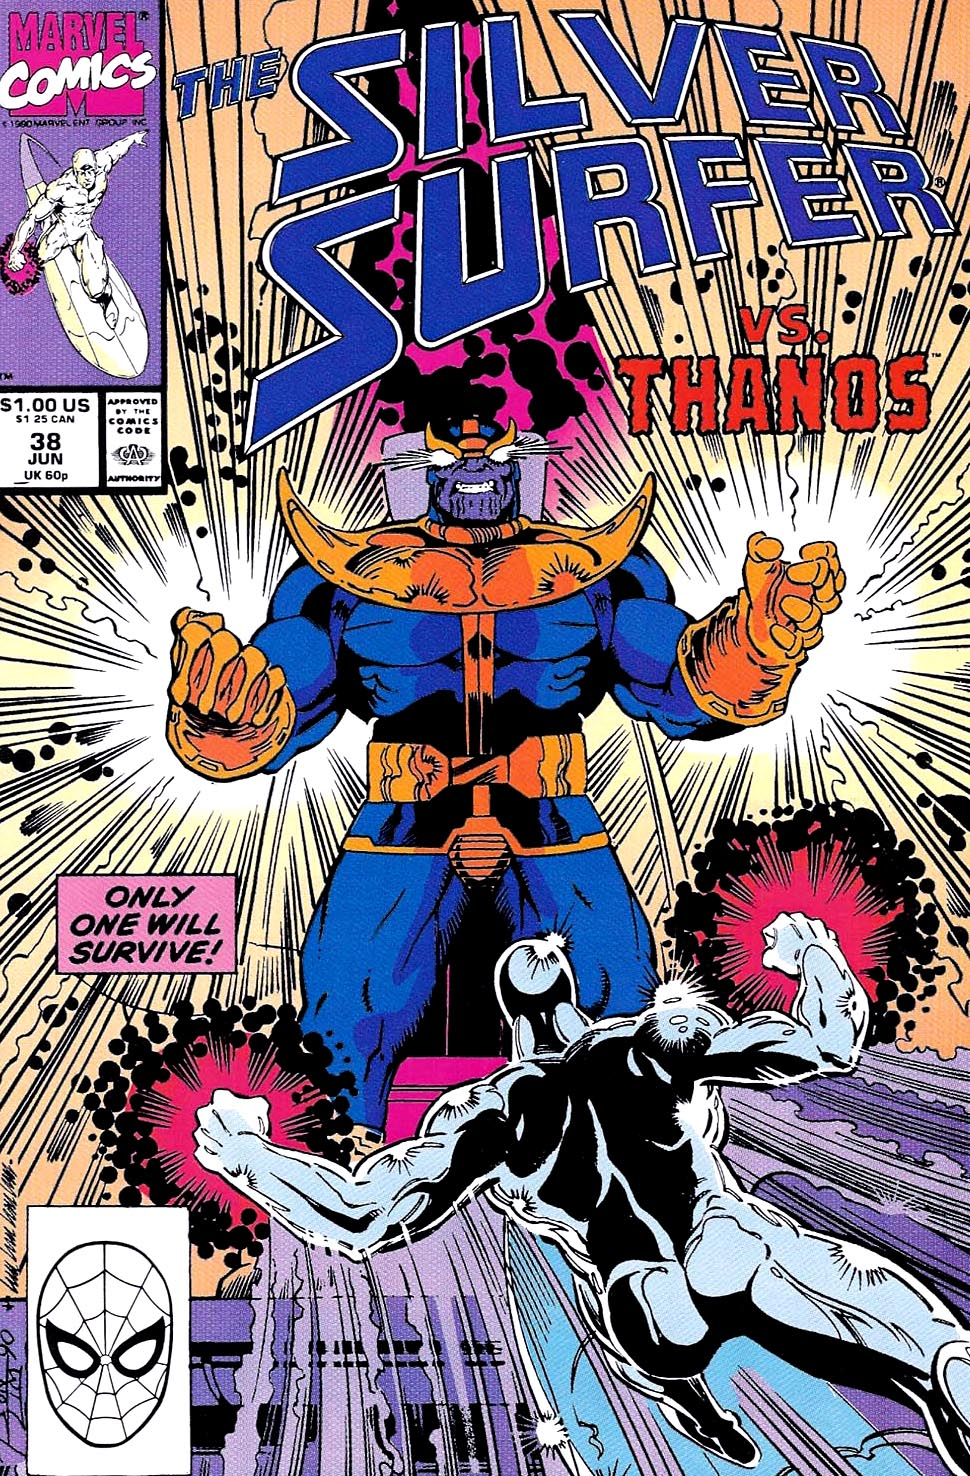 The Return Of Thanos: Silver Surfer 34-38